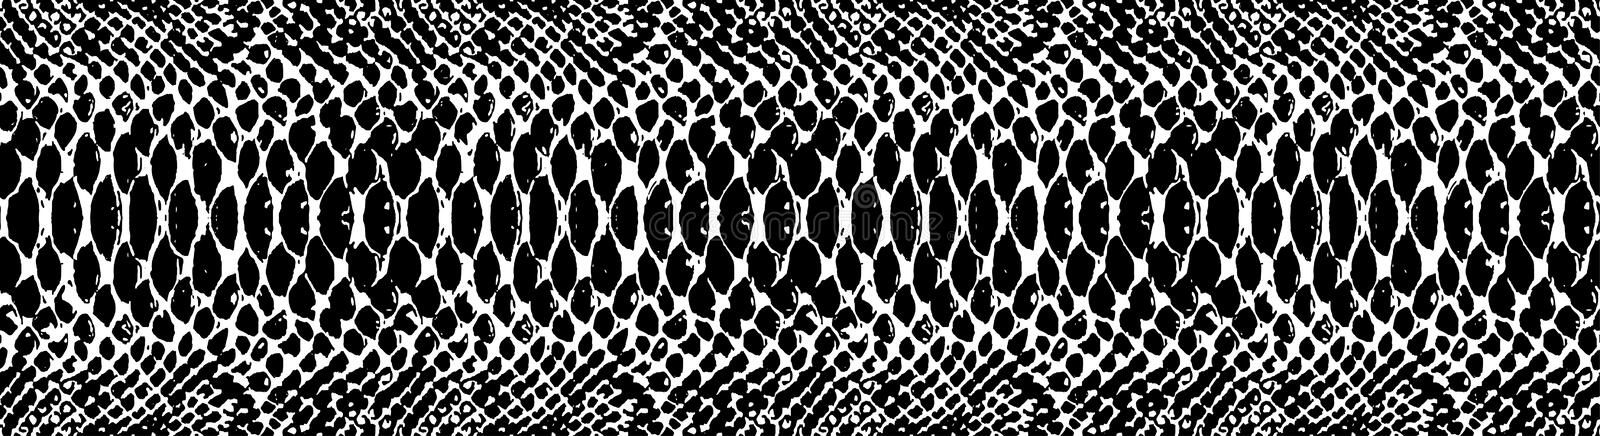 Snake skin pattern texture repeating seamless monochrome black & white. Vector. Texture snake. Fashionable print. Trendy vector background for your design. BW stock illustration